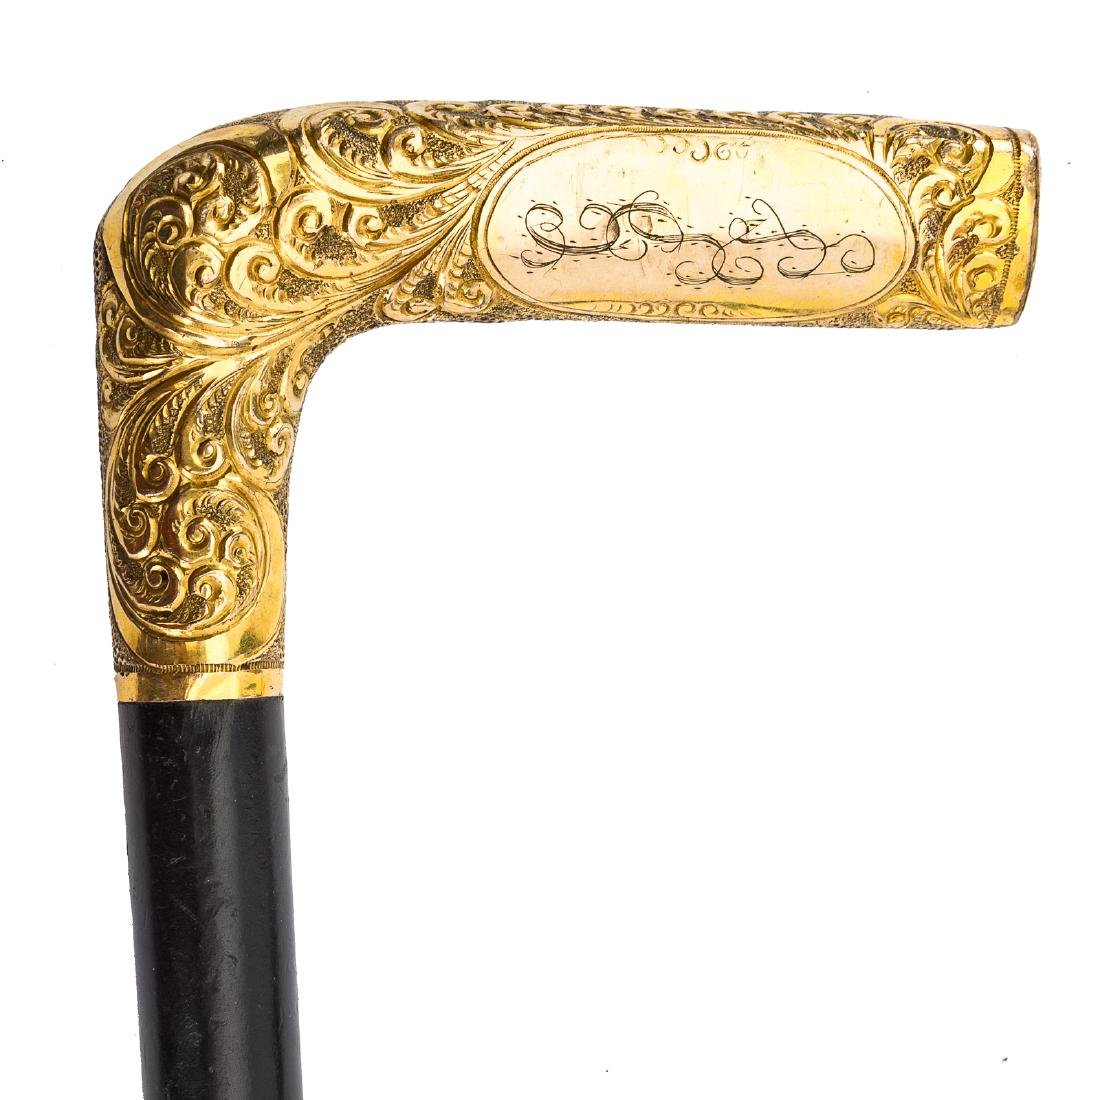 Edwardian 14K gold and agate umbrella handle - 2